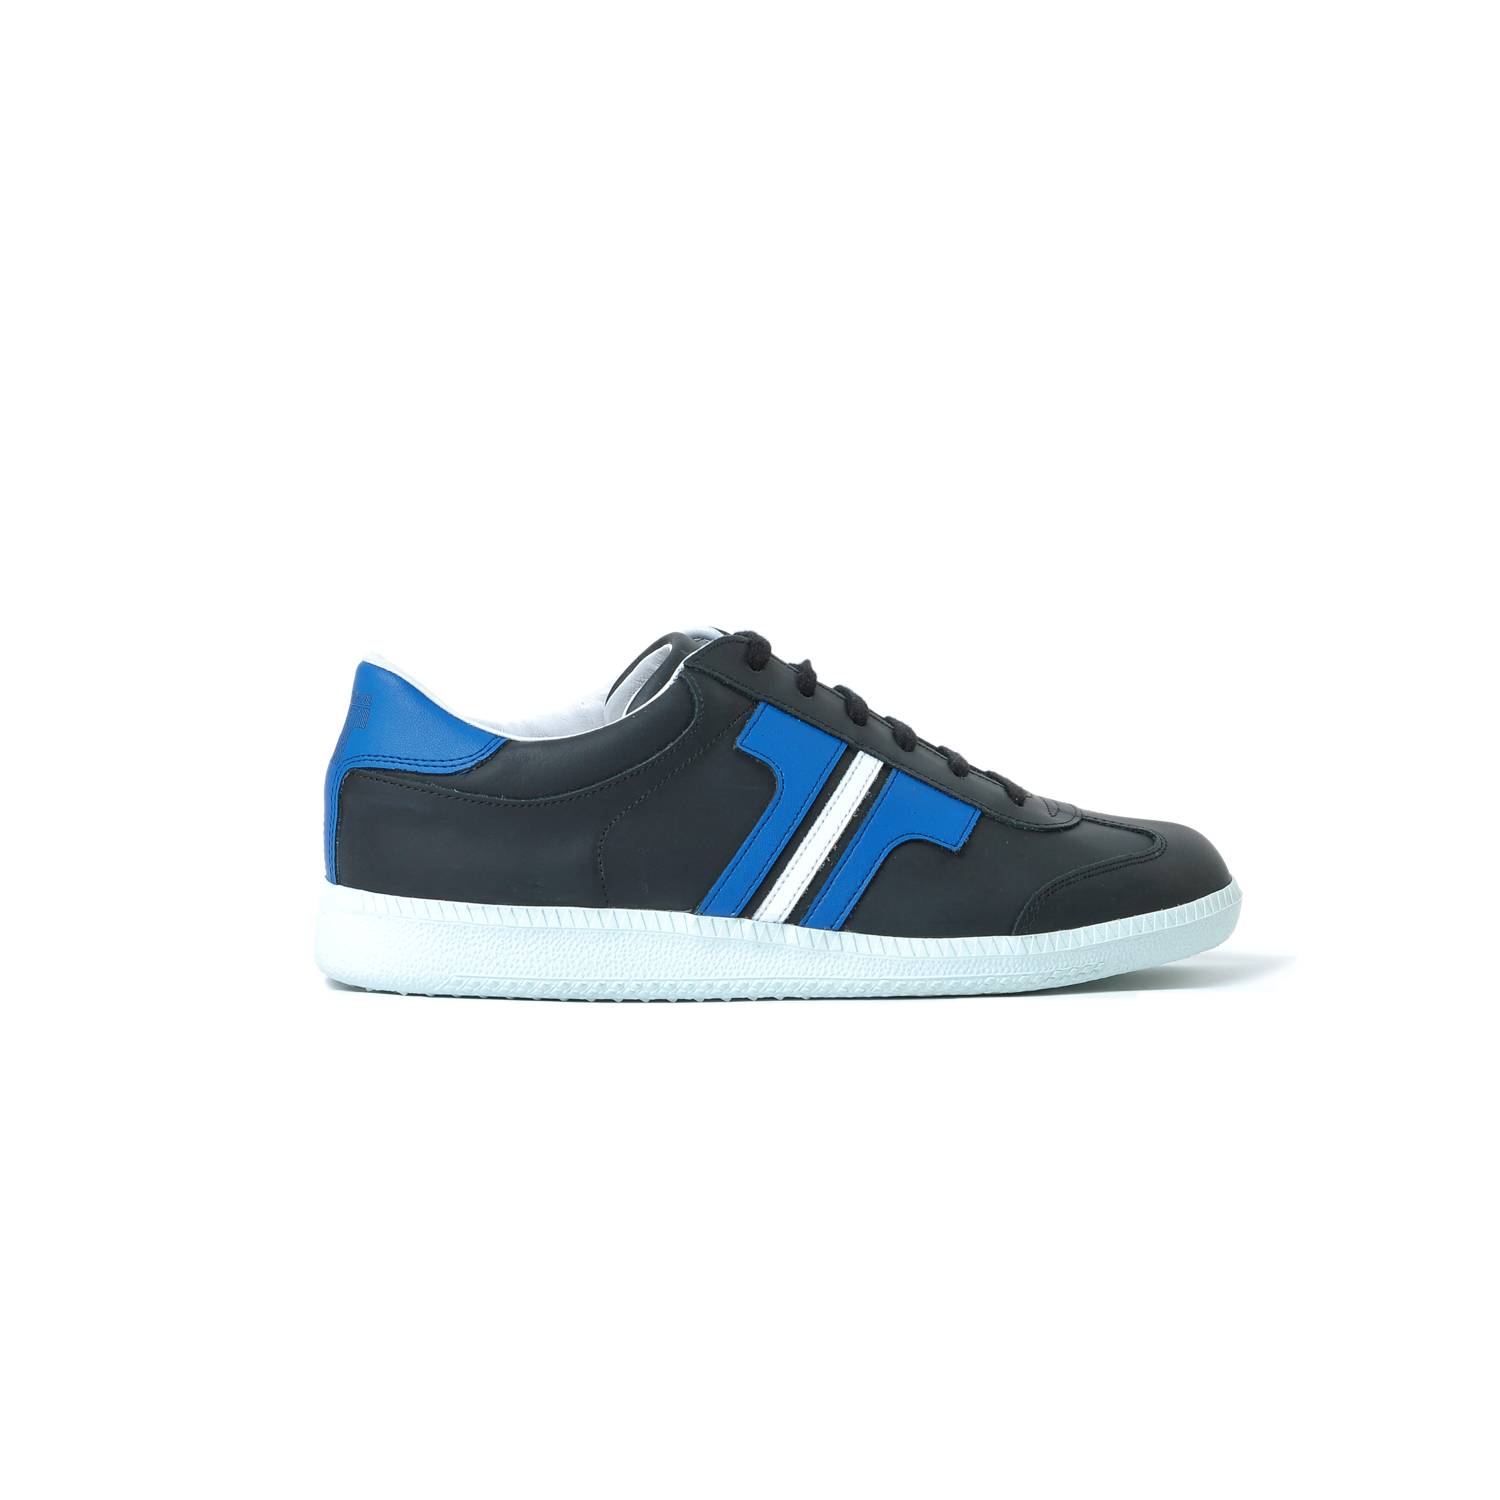 Tisza shoes - Compakt - Black-royal-white